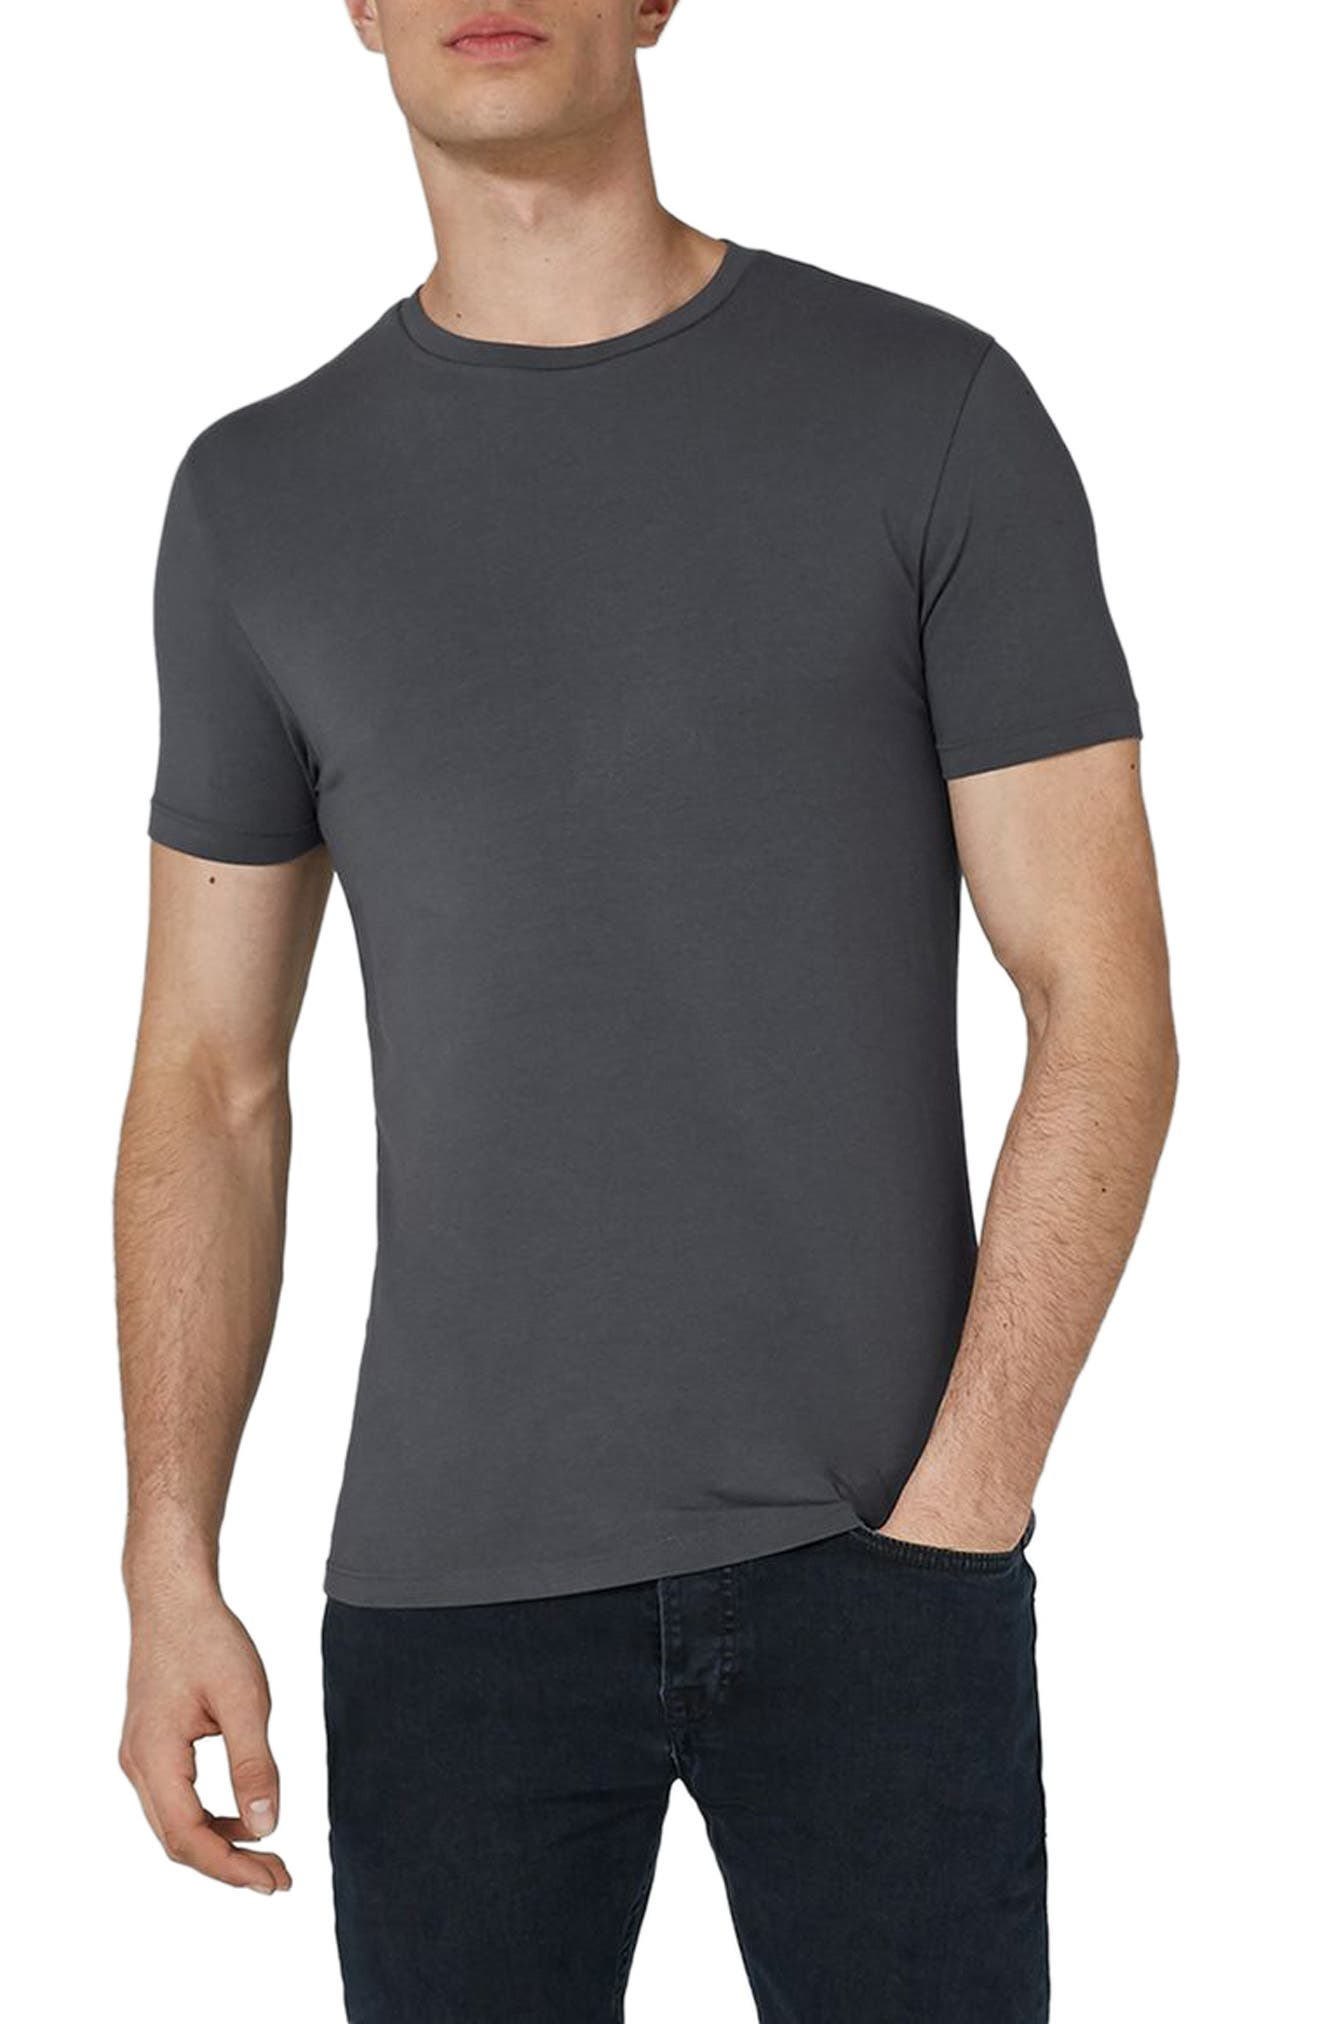 Topman Ultra Muscle Fit T-Shirt